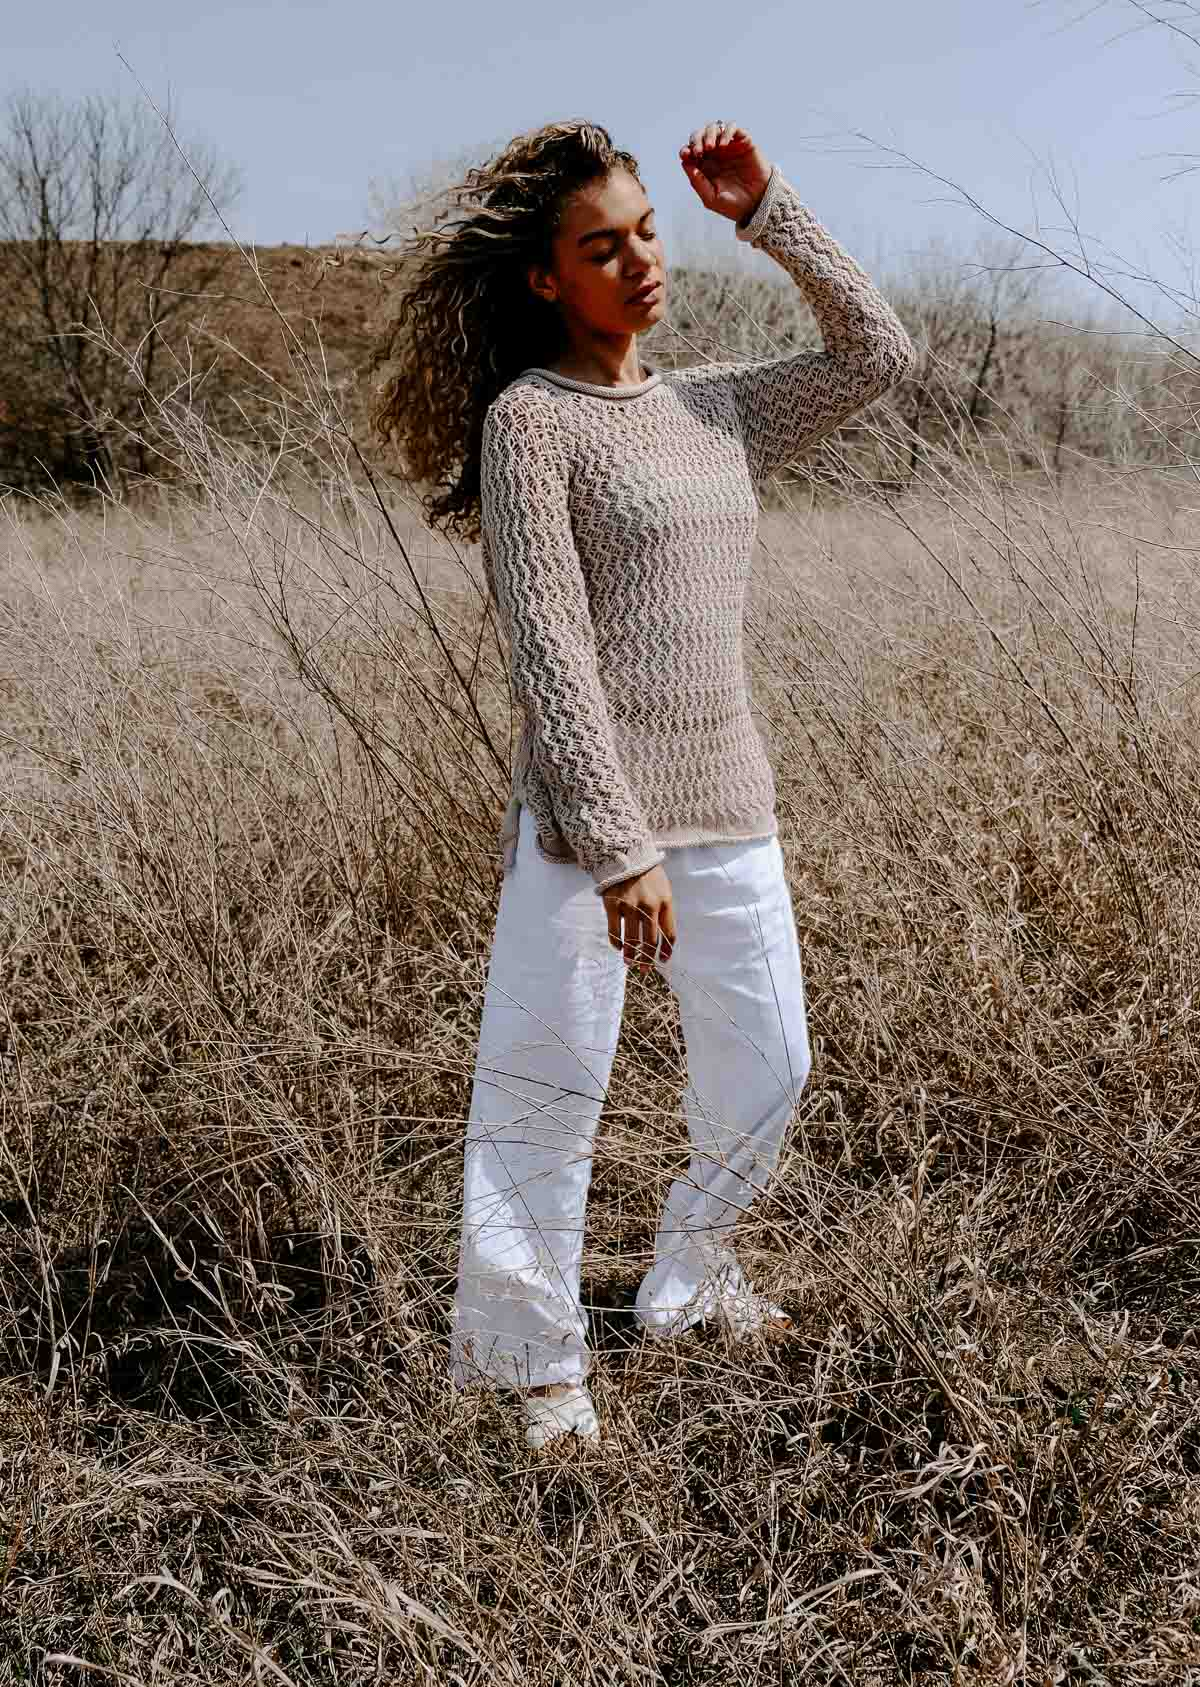 linen pants outfit with a crochet sweater. Makes a great summer outfit!